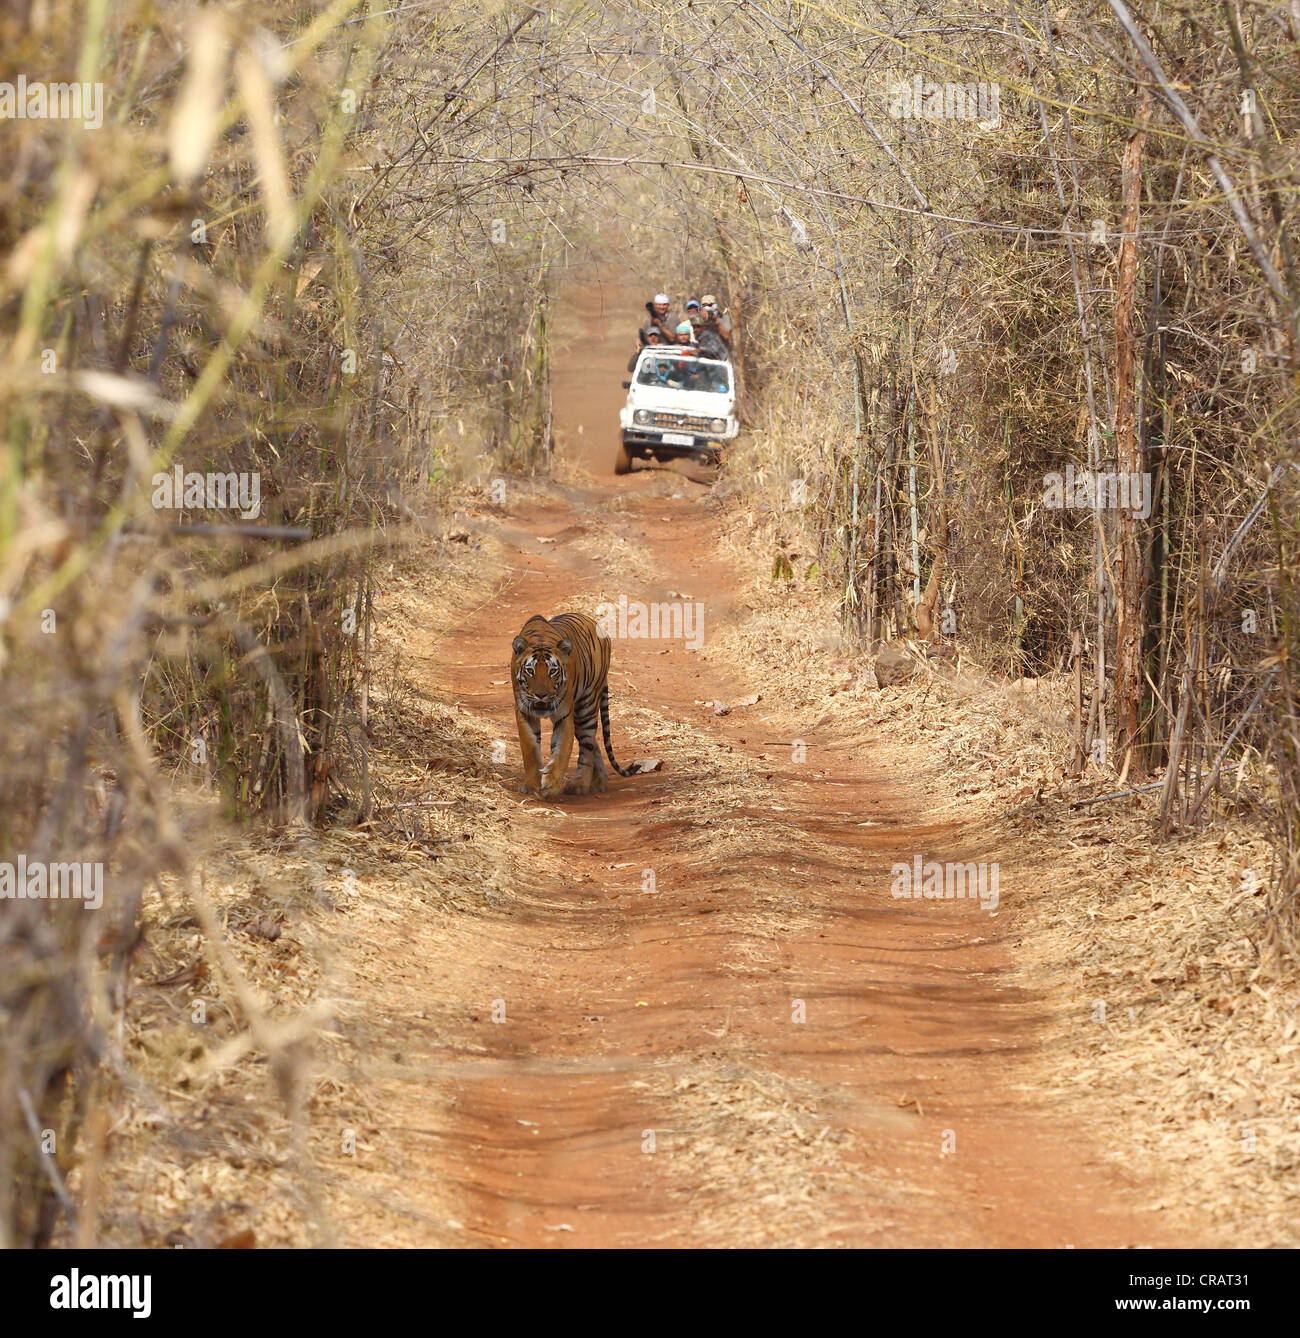 Tiger walking on a path in front of a safari jeep in the bamboo jungles of Tadoba, India - Stock Image